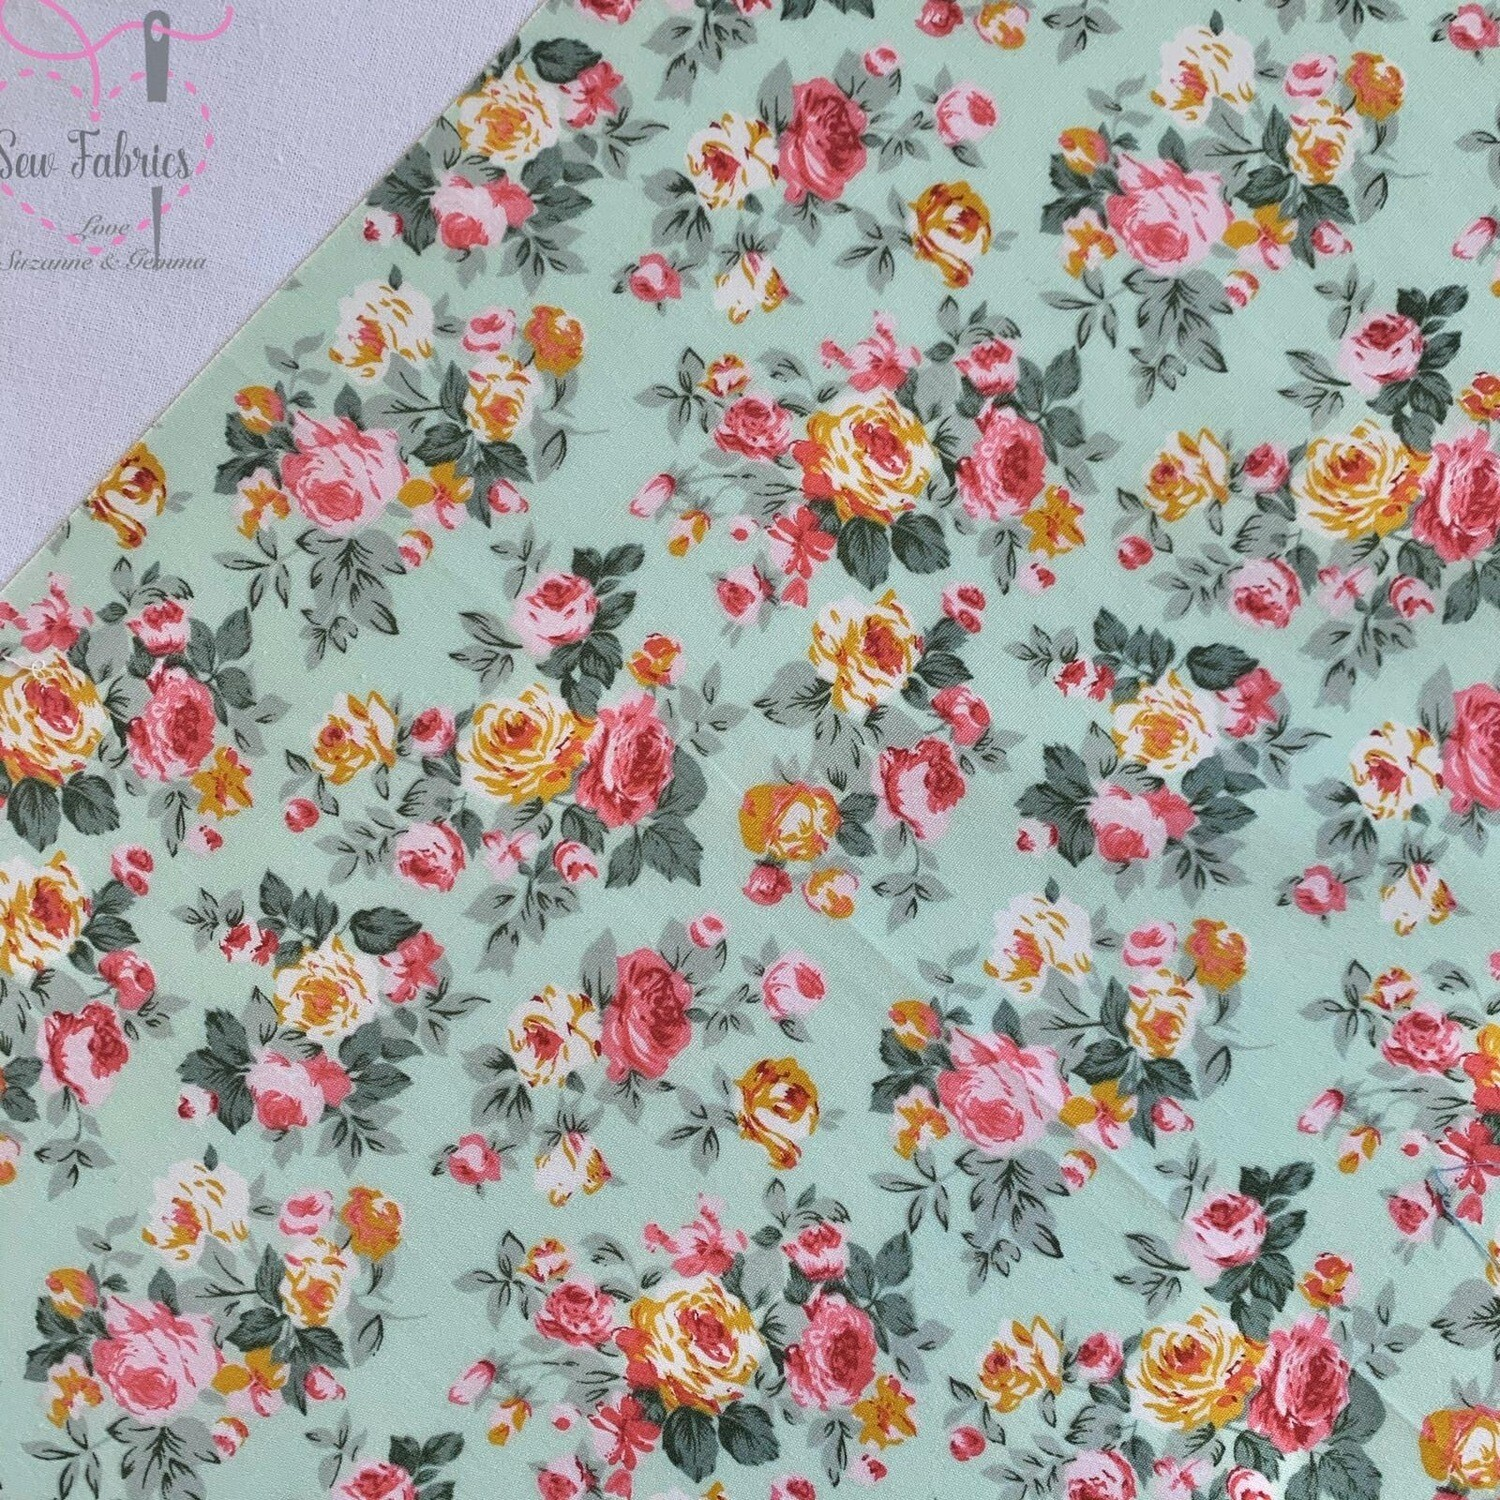 Rose and Hubble Meadow Bunch of Peonies Floral Fabric Vintage Floral 100% Cotton Poplin Flower Material Sewing